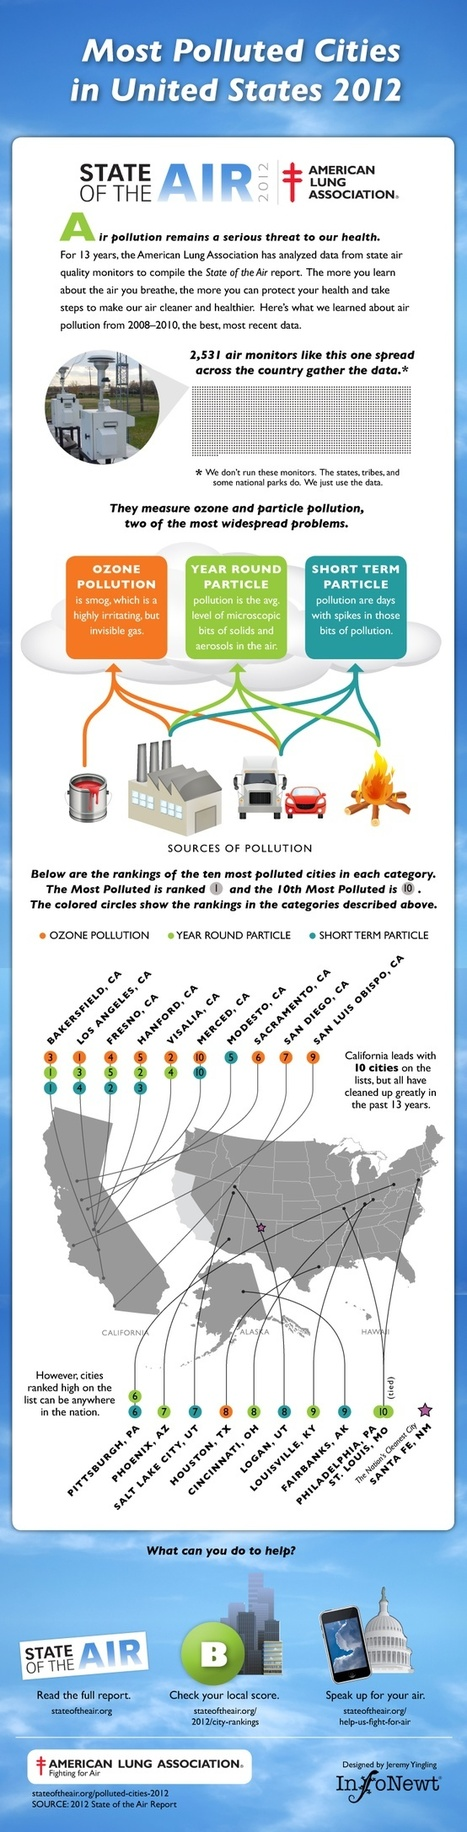 Most Polluted Cities in United States 2012 infographic | Sustainable ⊜ Smart Path | Scoop.it